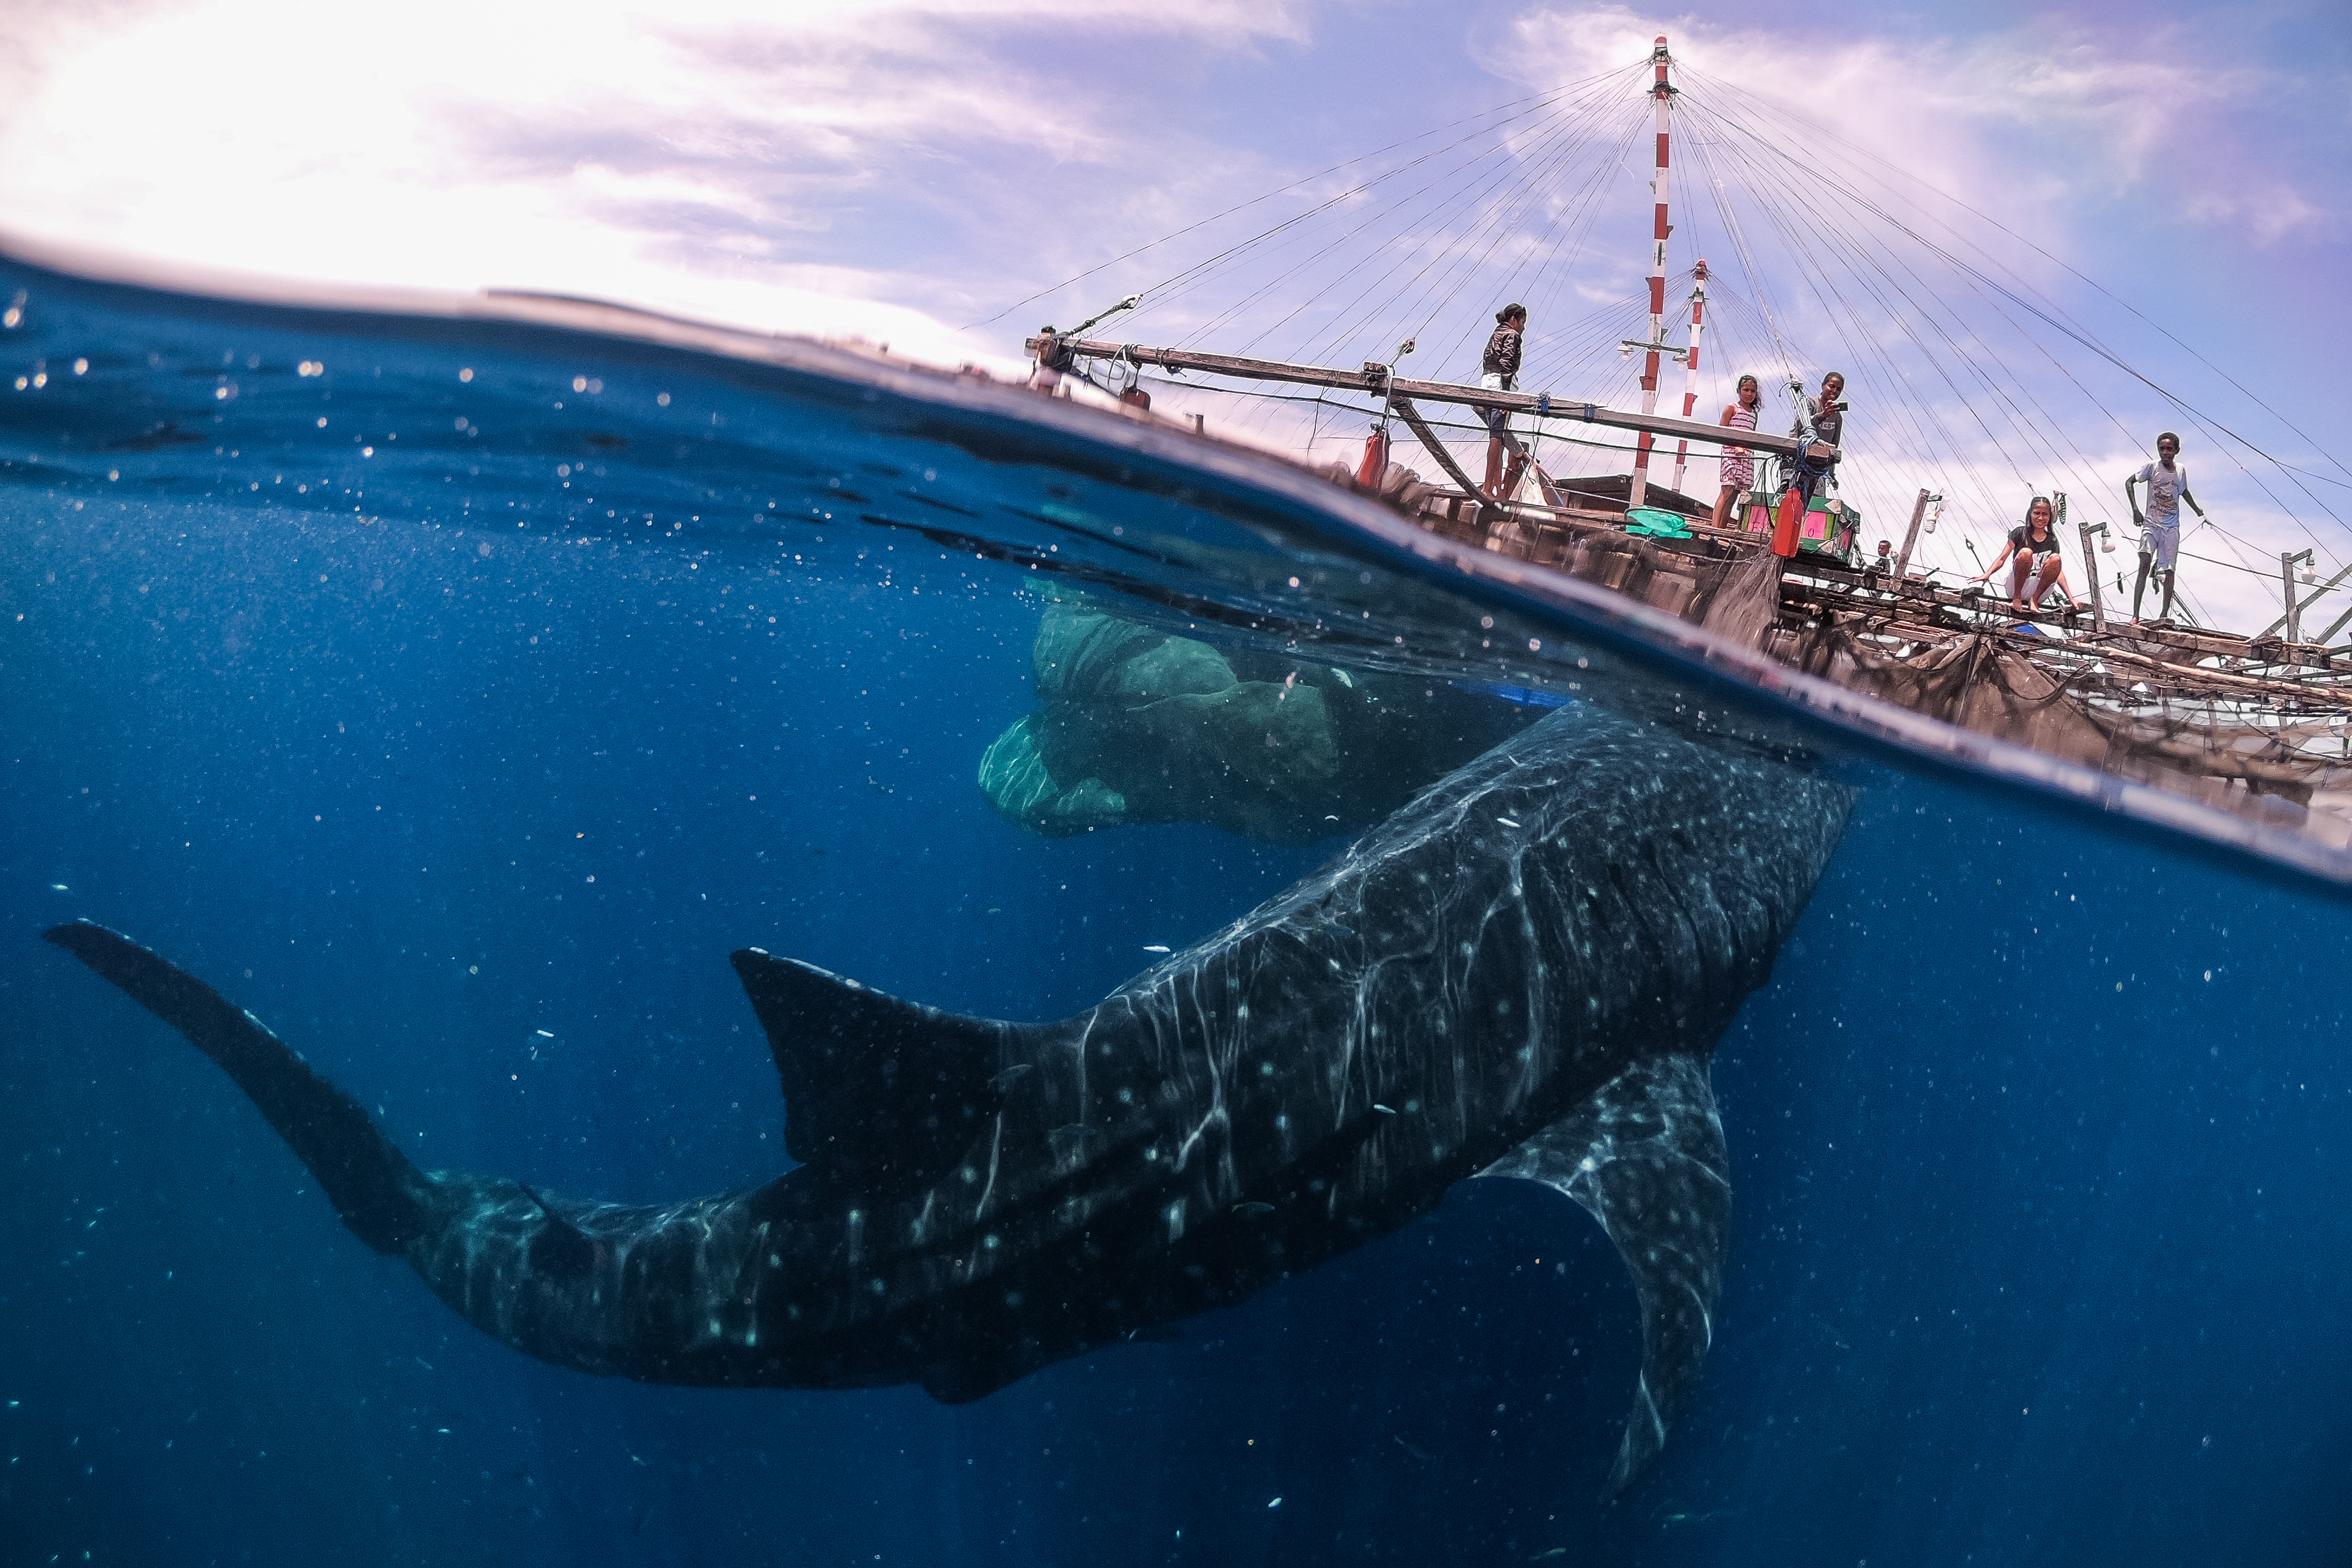 World Photography Organisation: Travel - 2019 Open Competition Shortlist